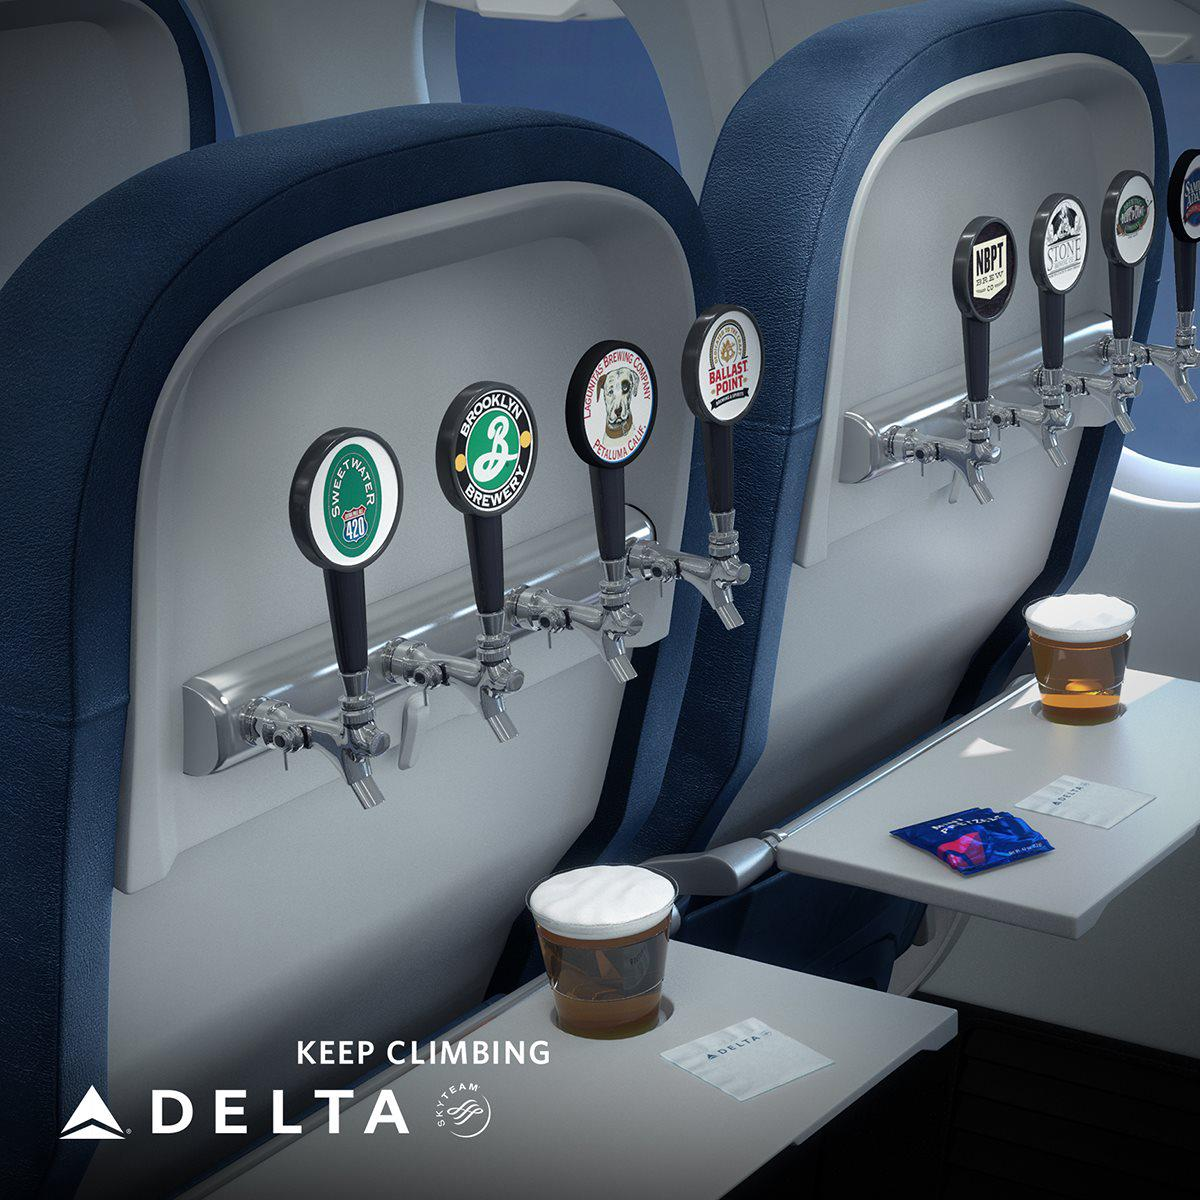 If my seat doesn't look like this next time I board @Delta I'm going to throw a fit. http://t.co/teoTNQHehm